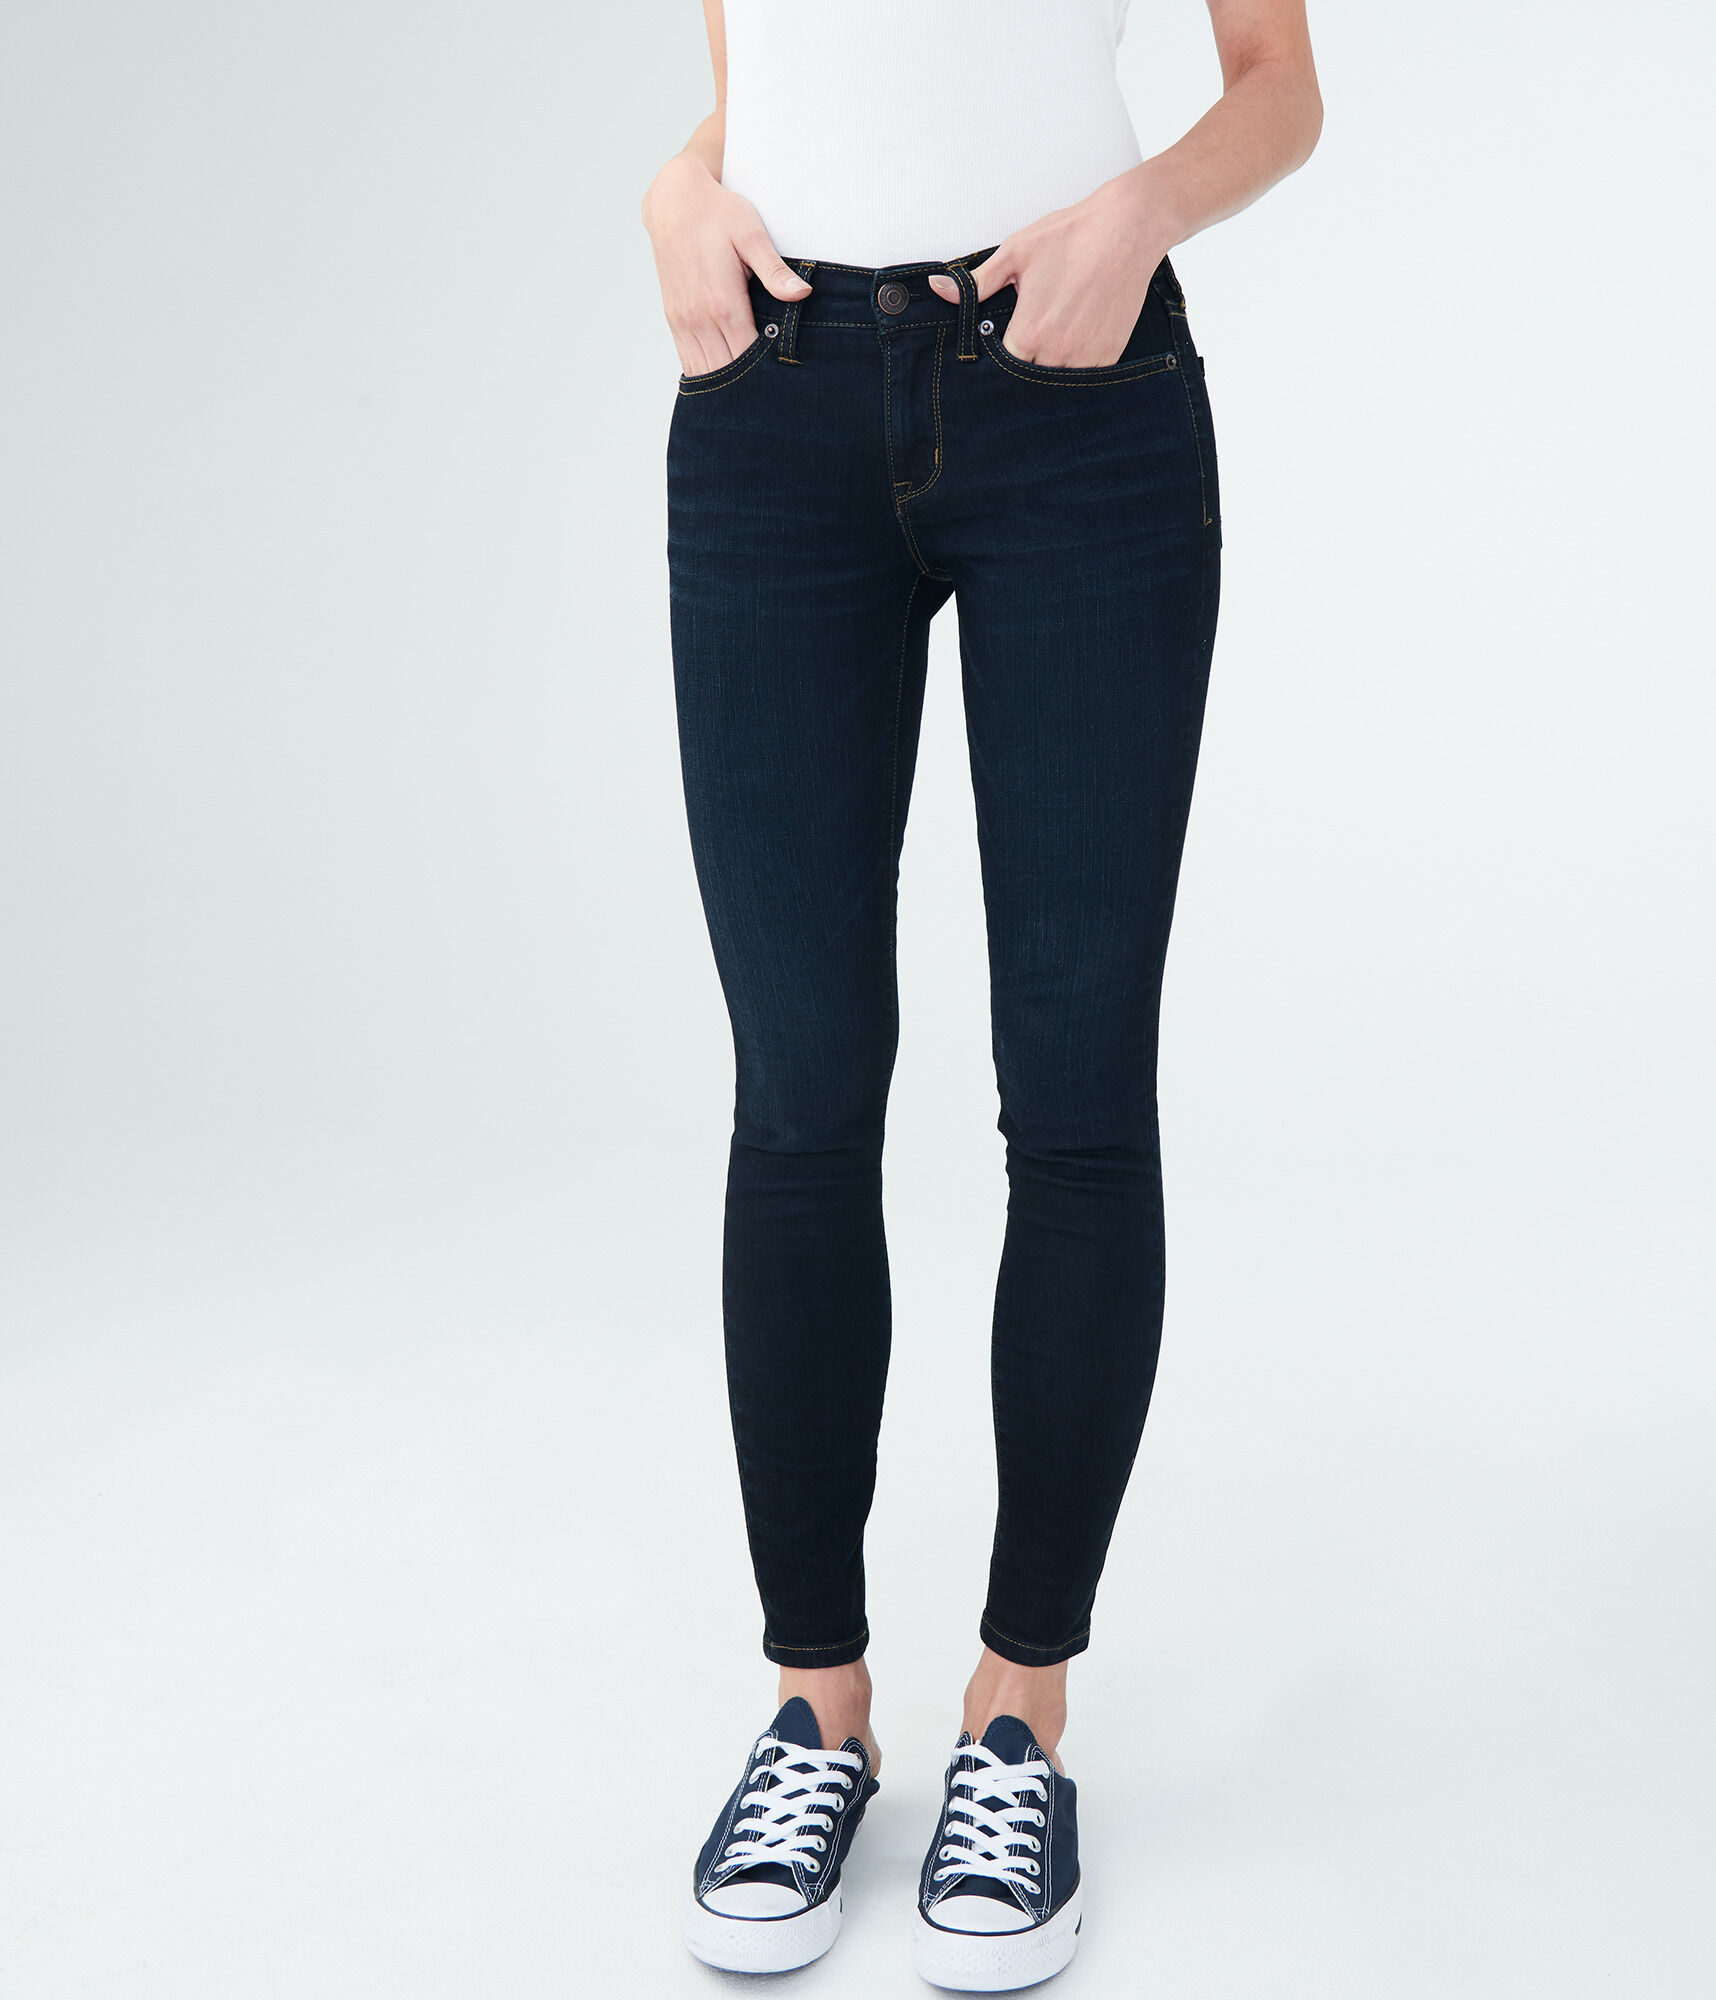 Seriously Low Rise Stretchy Jegging Low Seriously Stretchy dQCortshxB